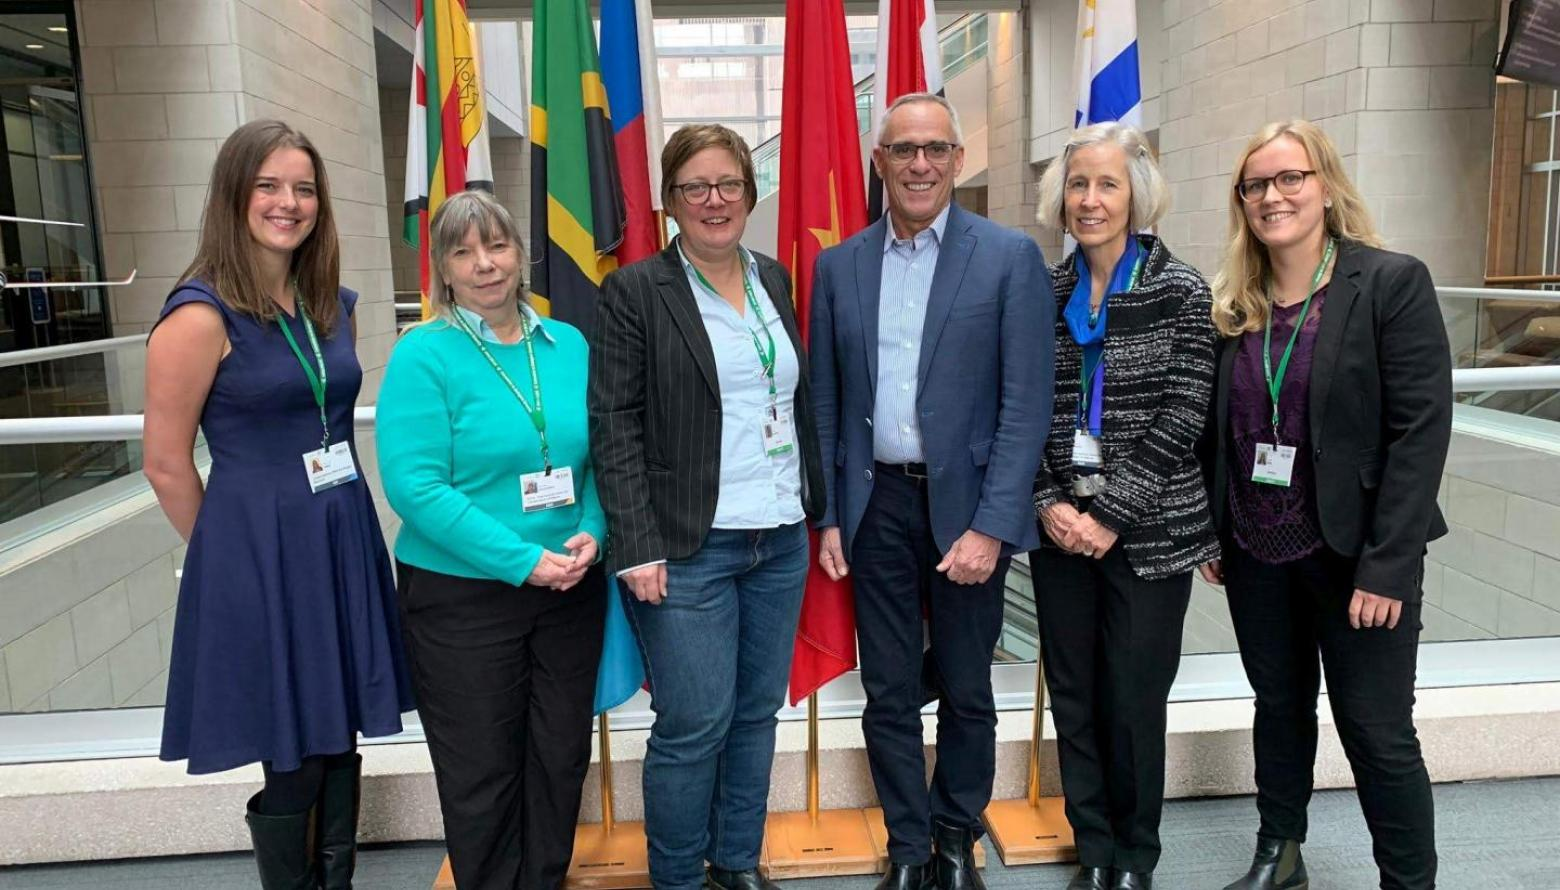 From left to right Anne Virnig (UNDP); Dr.Kathy MacKinnon (IUCN WCPA); Inka Gnittke (BMU); Trevor Sandwith (IUCN); Dr. Jane Smart (IUCN); Janina Heim (BMU)